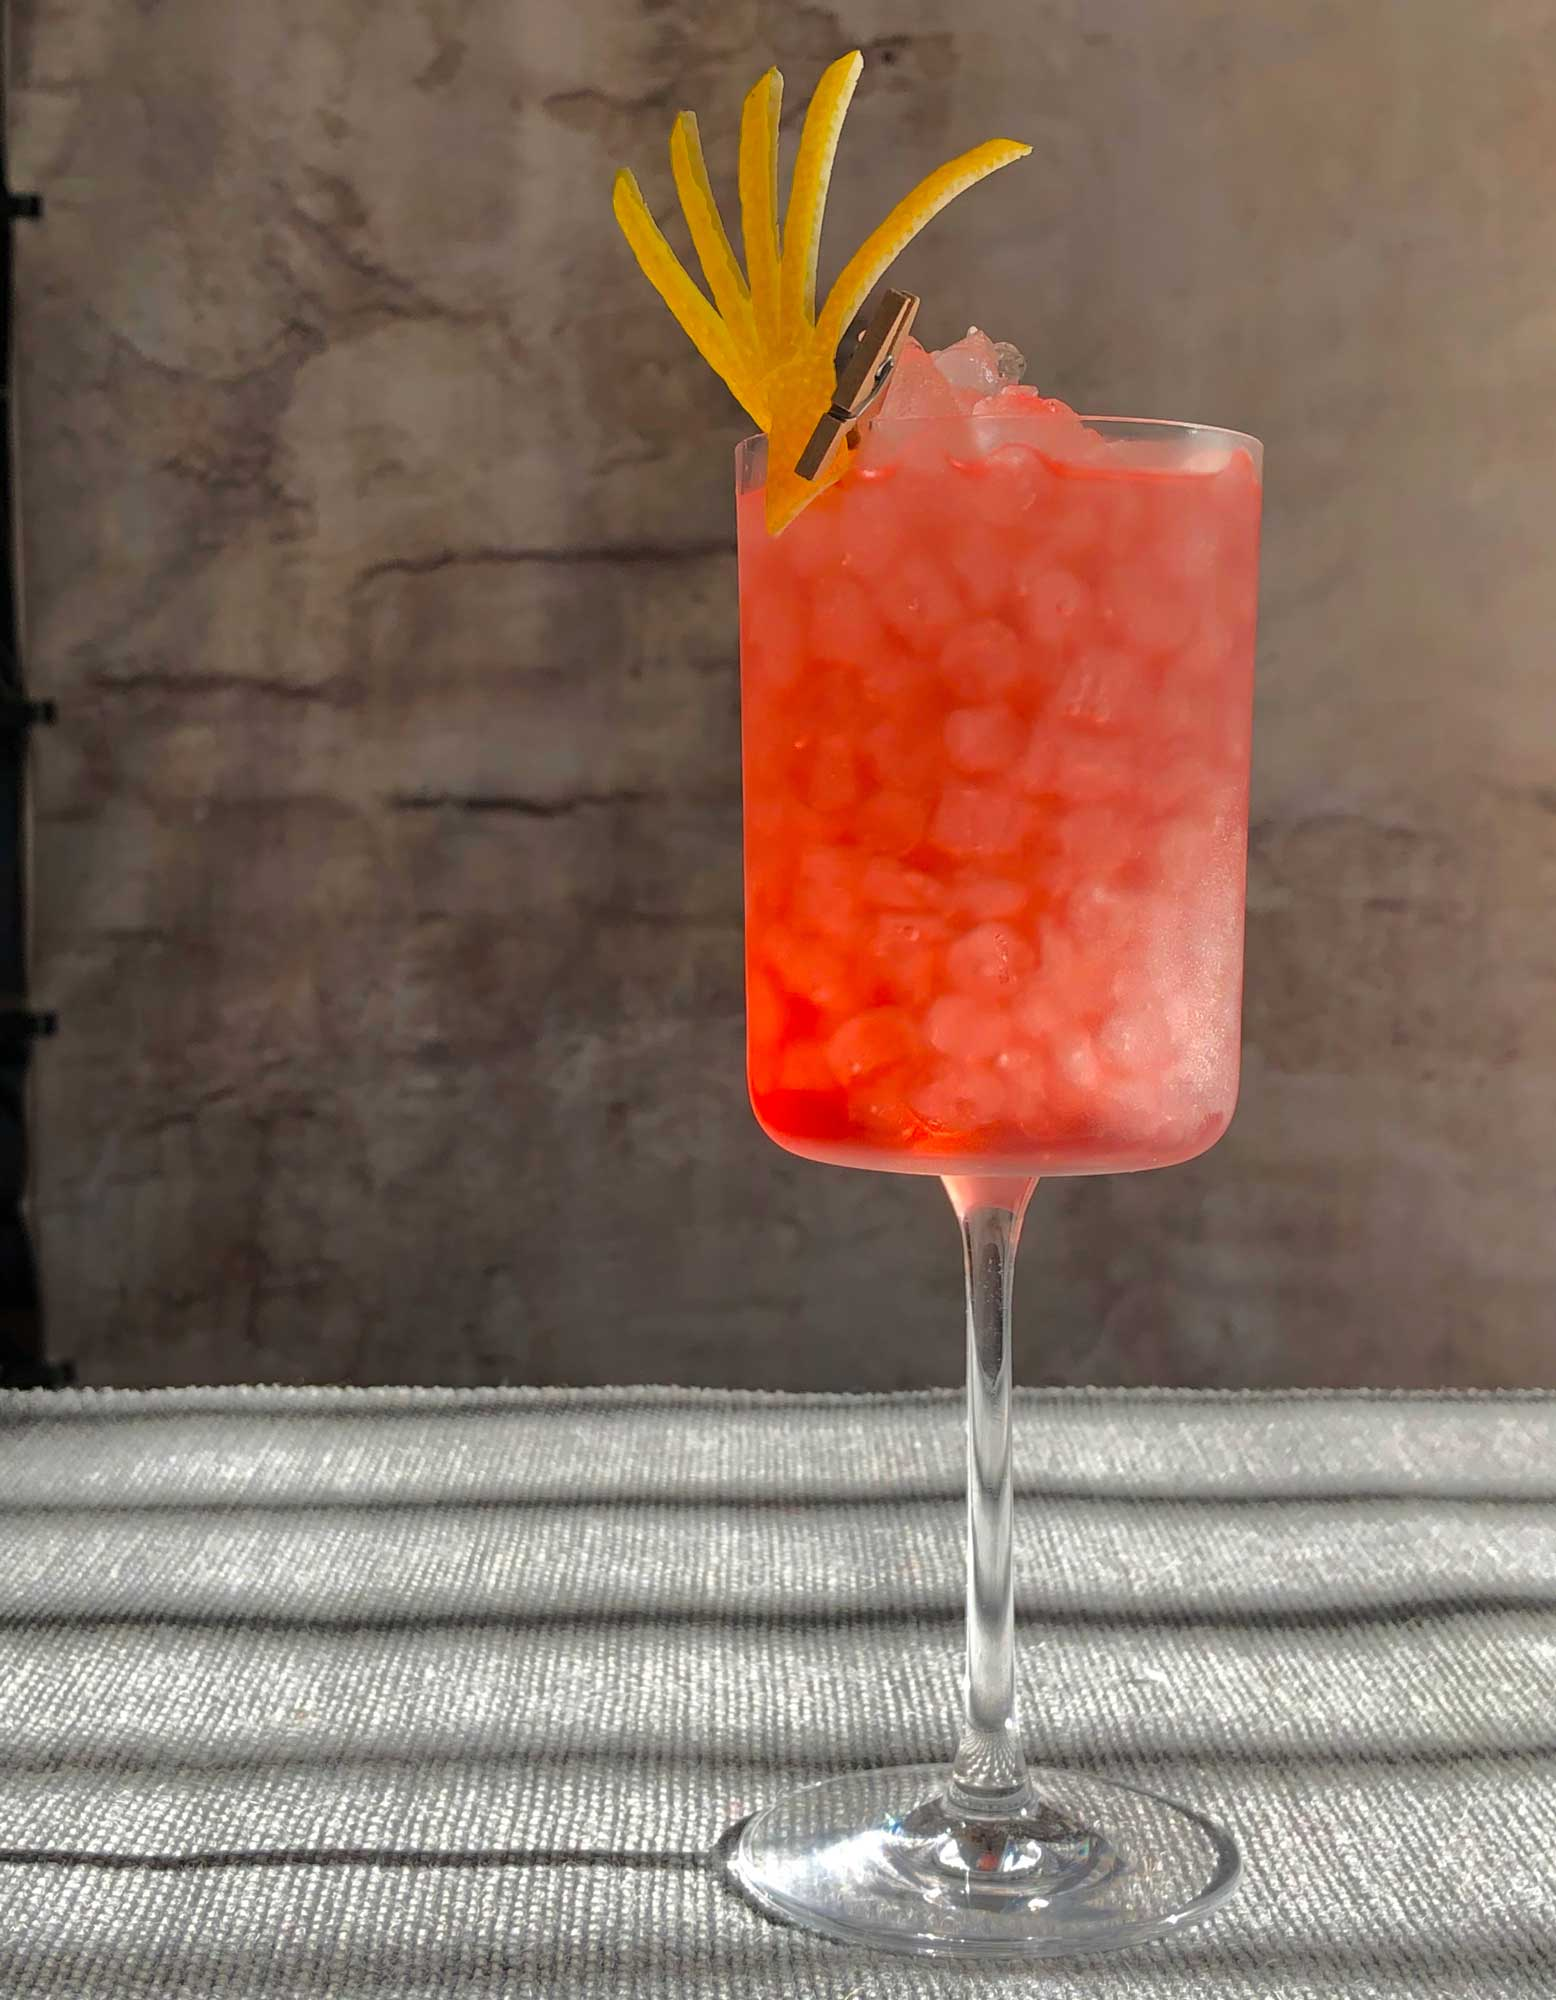 An example of the Santa Rosa Highball, the mixed drink (highball) featuring grapefruit soda, Cocchi Americano Rosa, and blanco tequila; photo by Lee Edwards